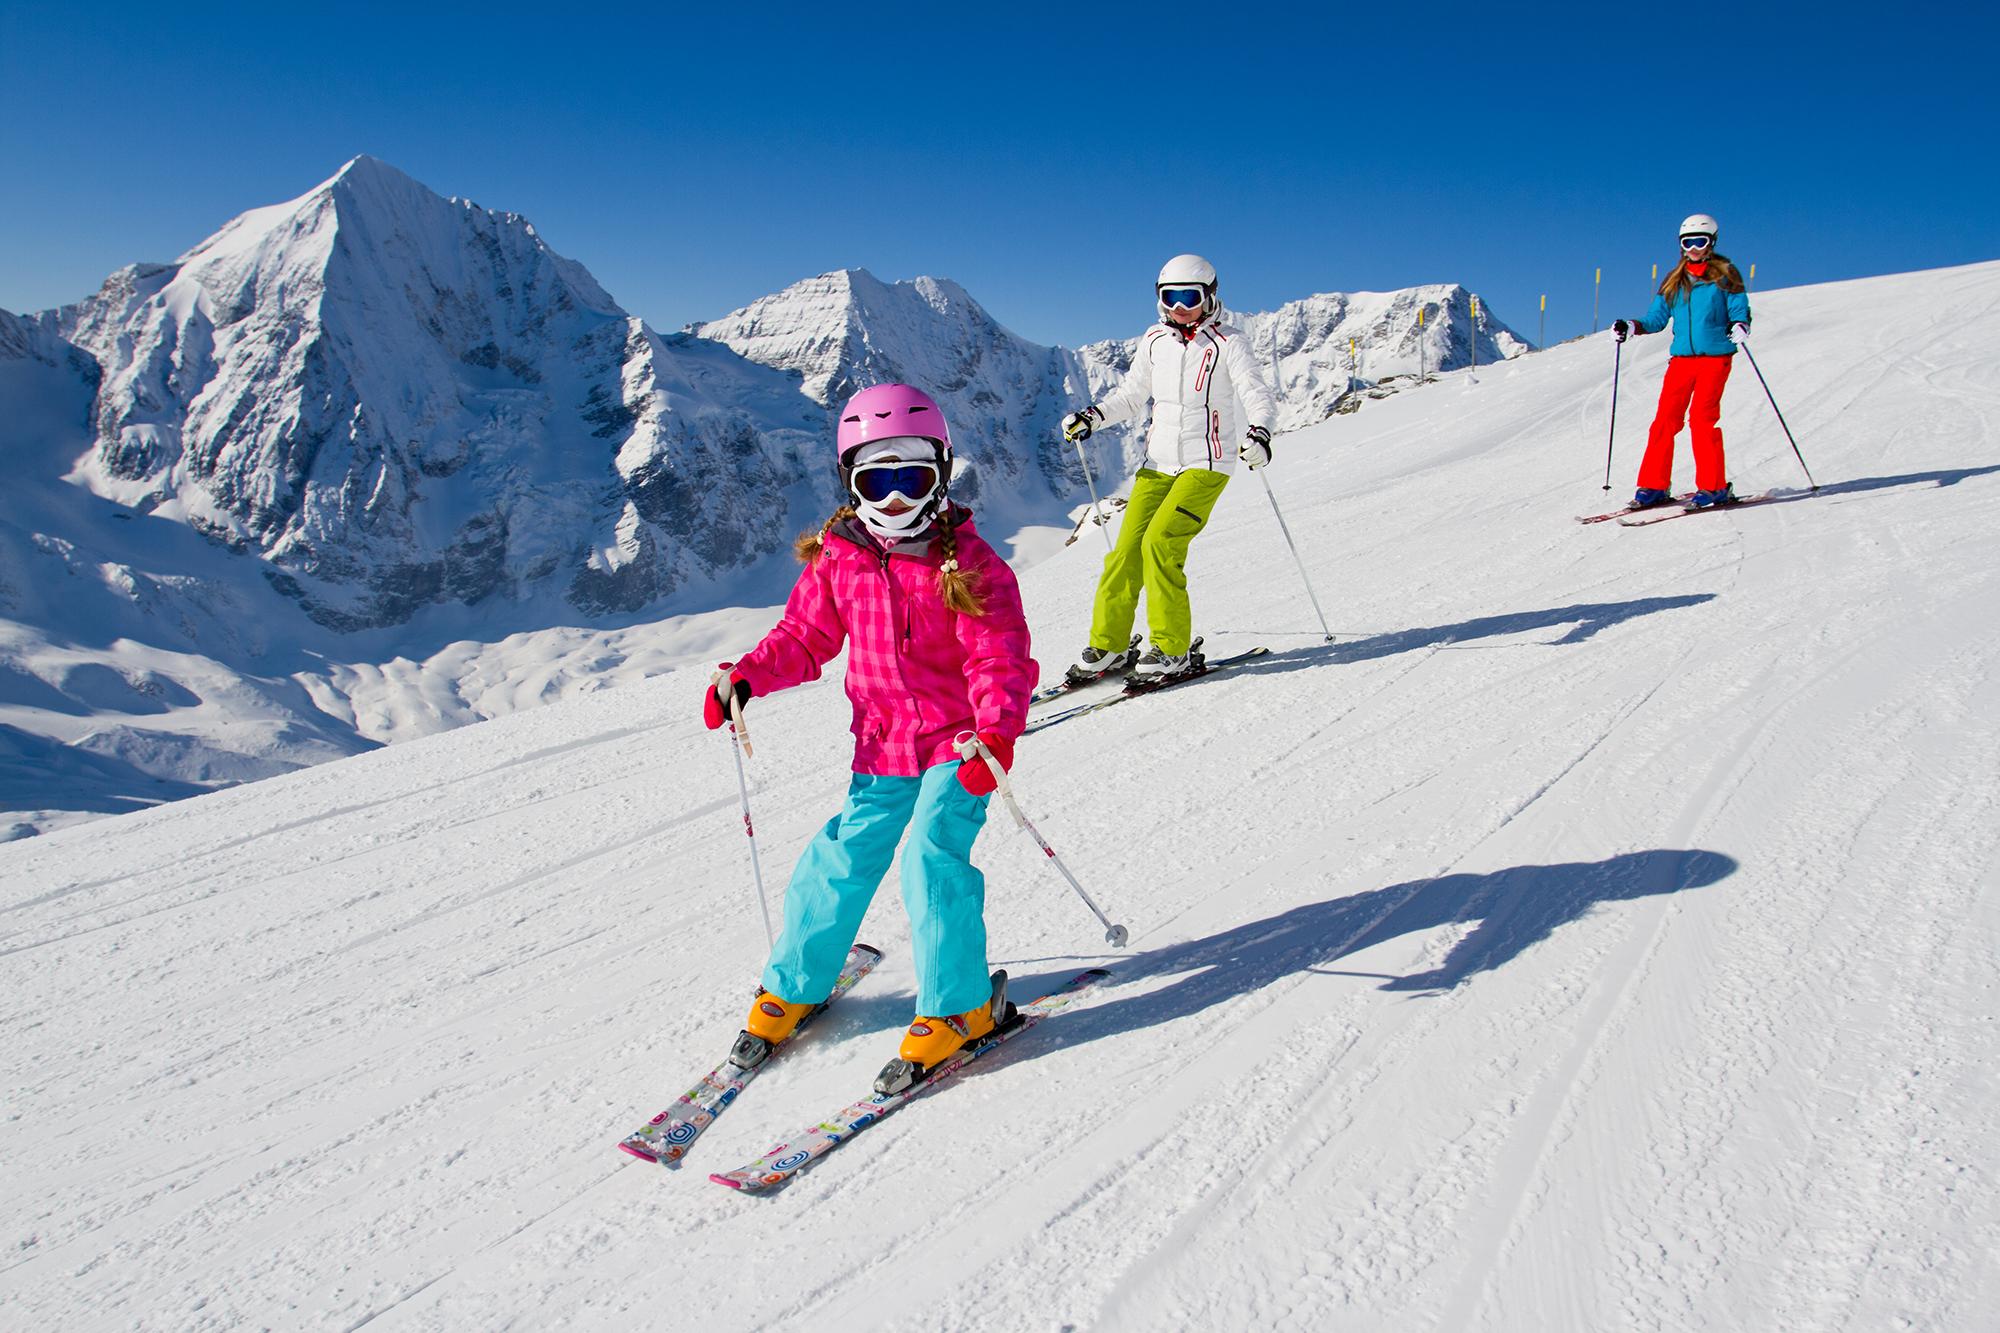 Family Skiing in the Mountains